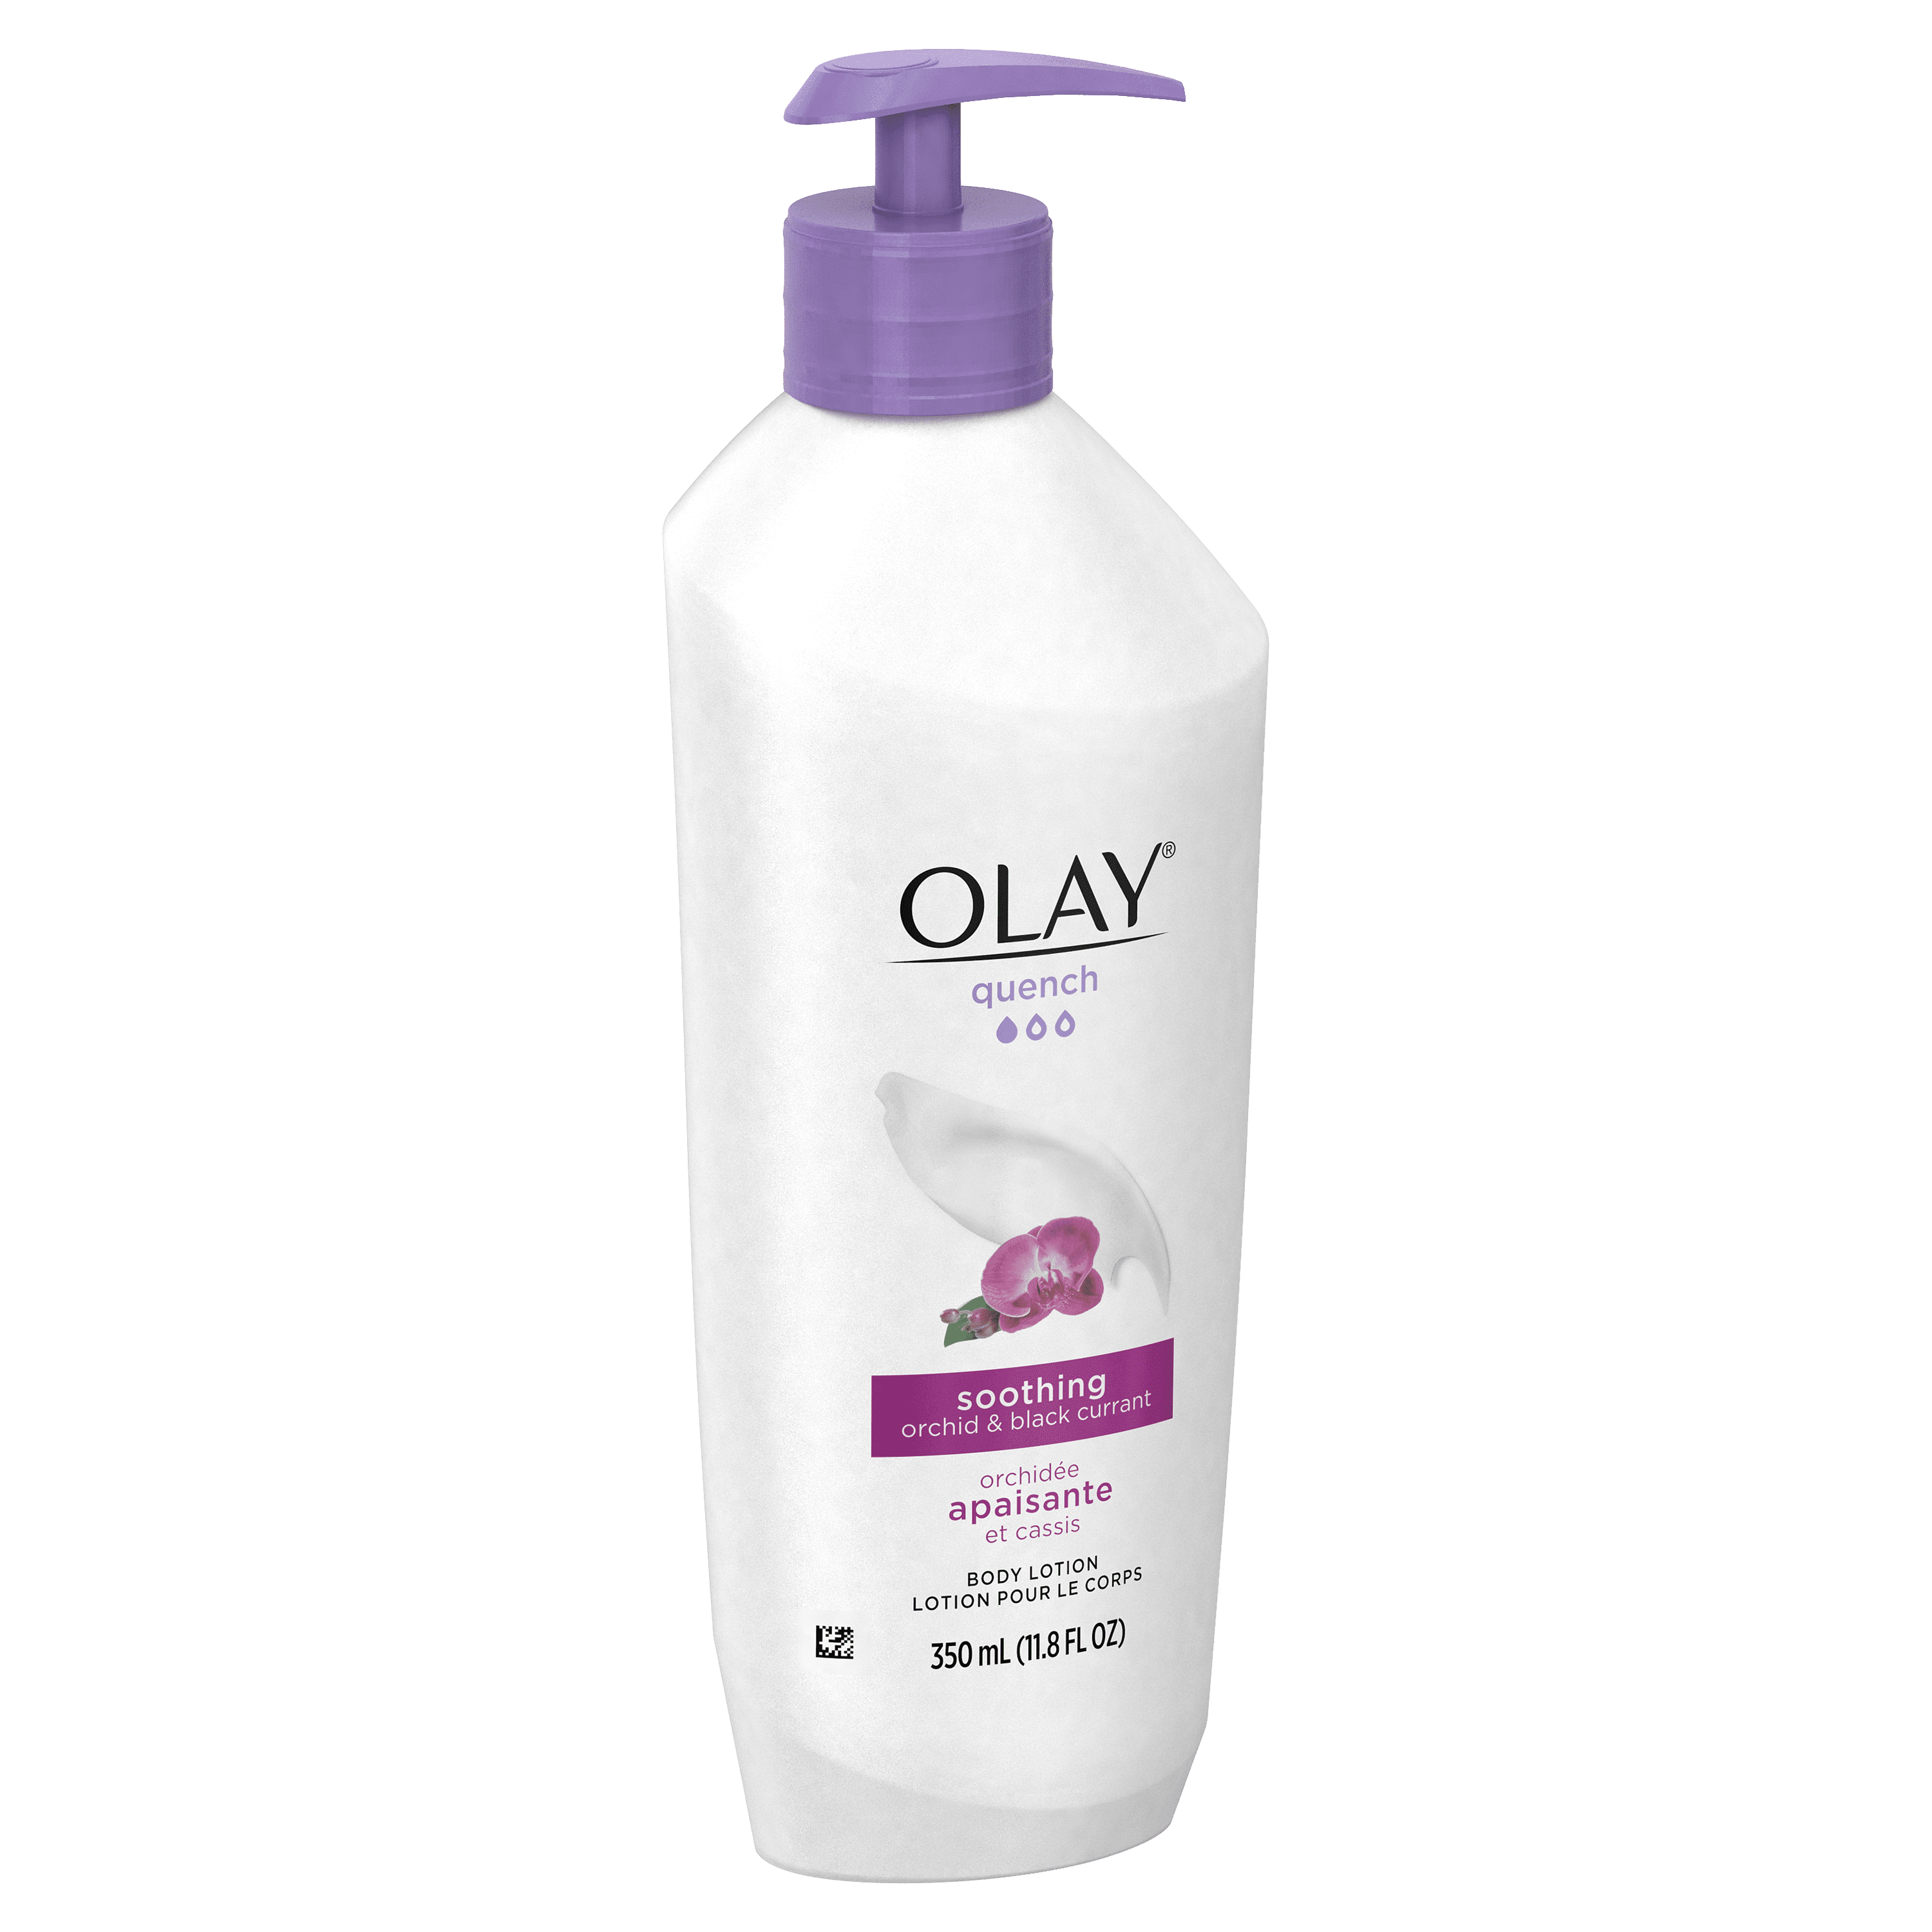 Quench Soothing Orchid and Black Currant Body Lotion_1